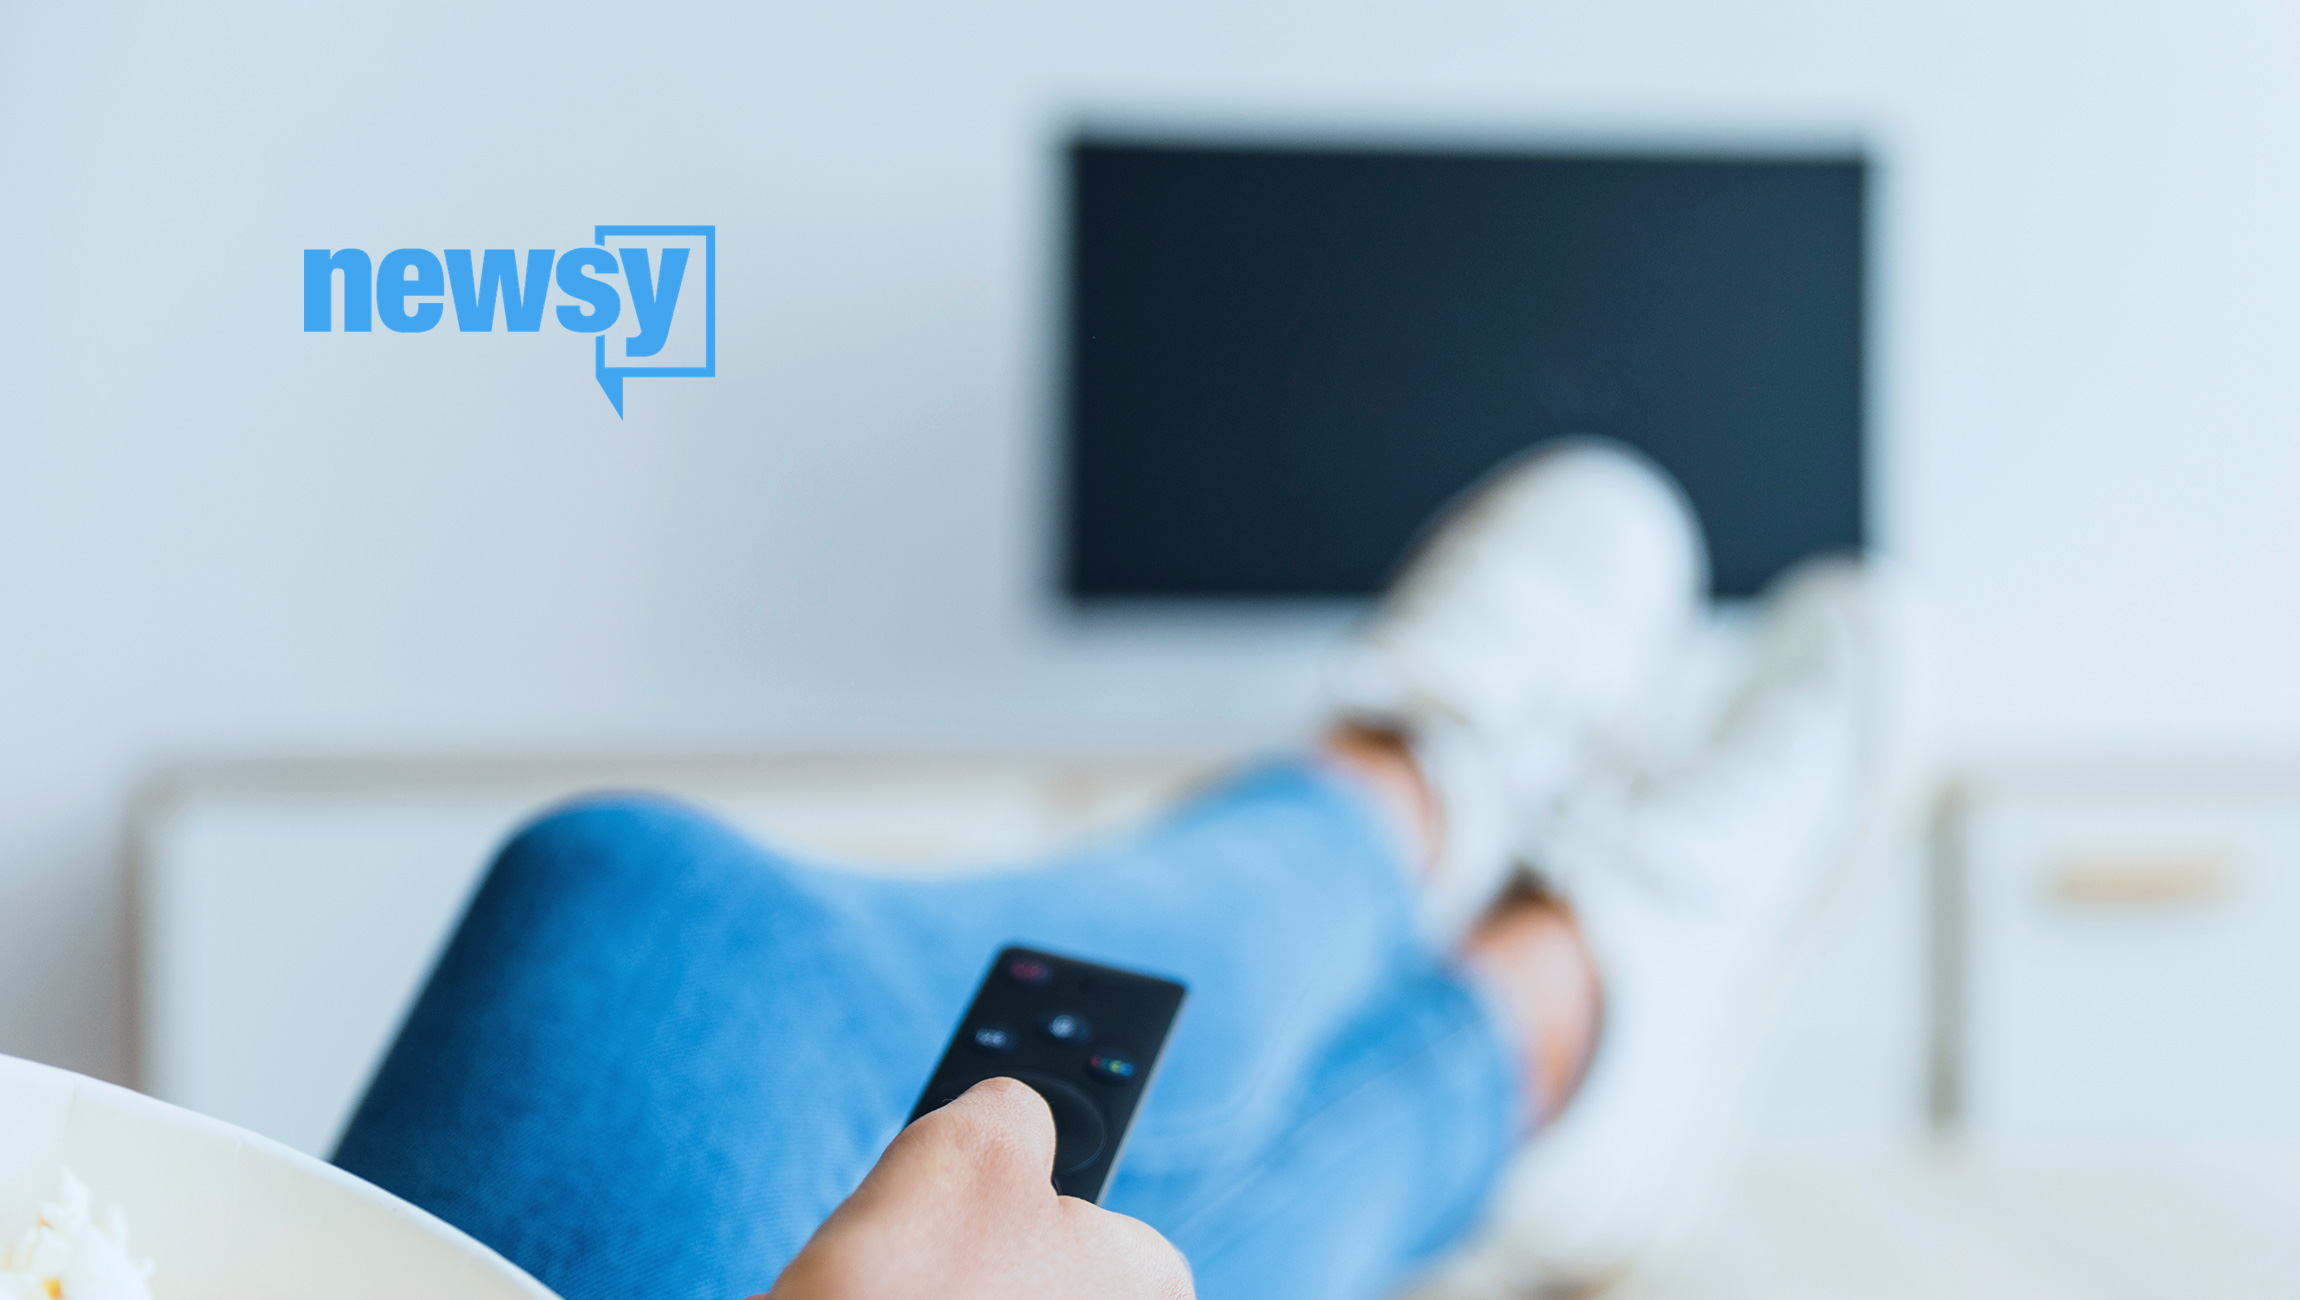 Newsy Expands Pay-TV Distribution, Adding Full Slate of News Programming to fuboTV